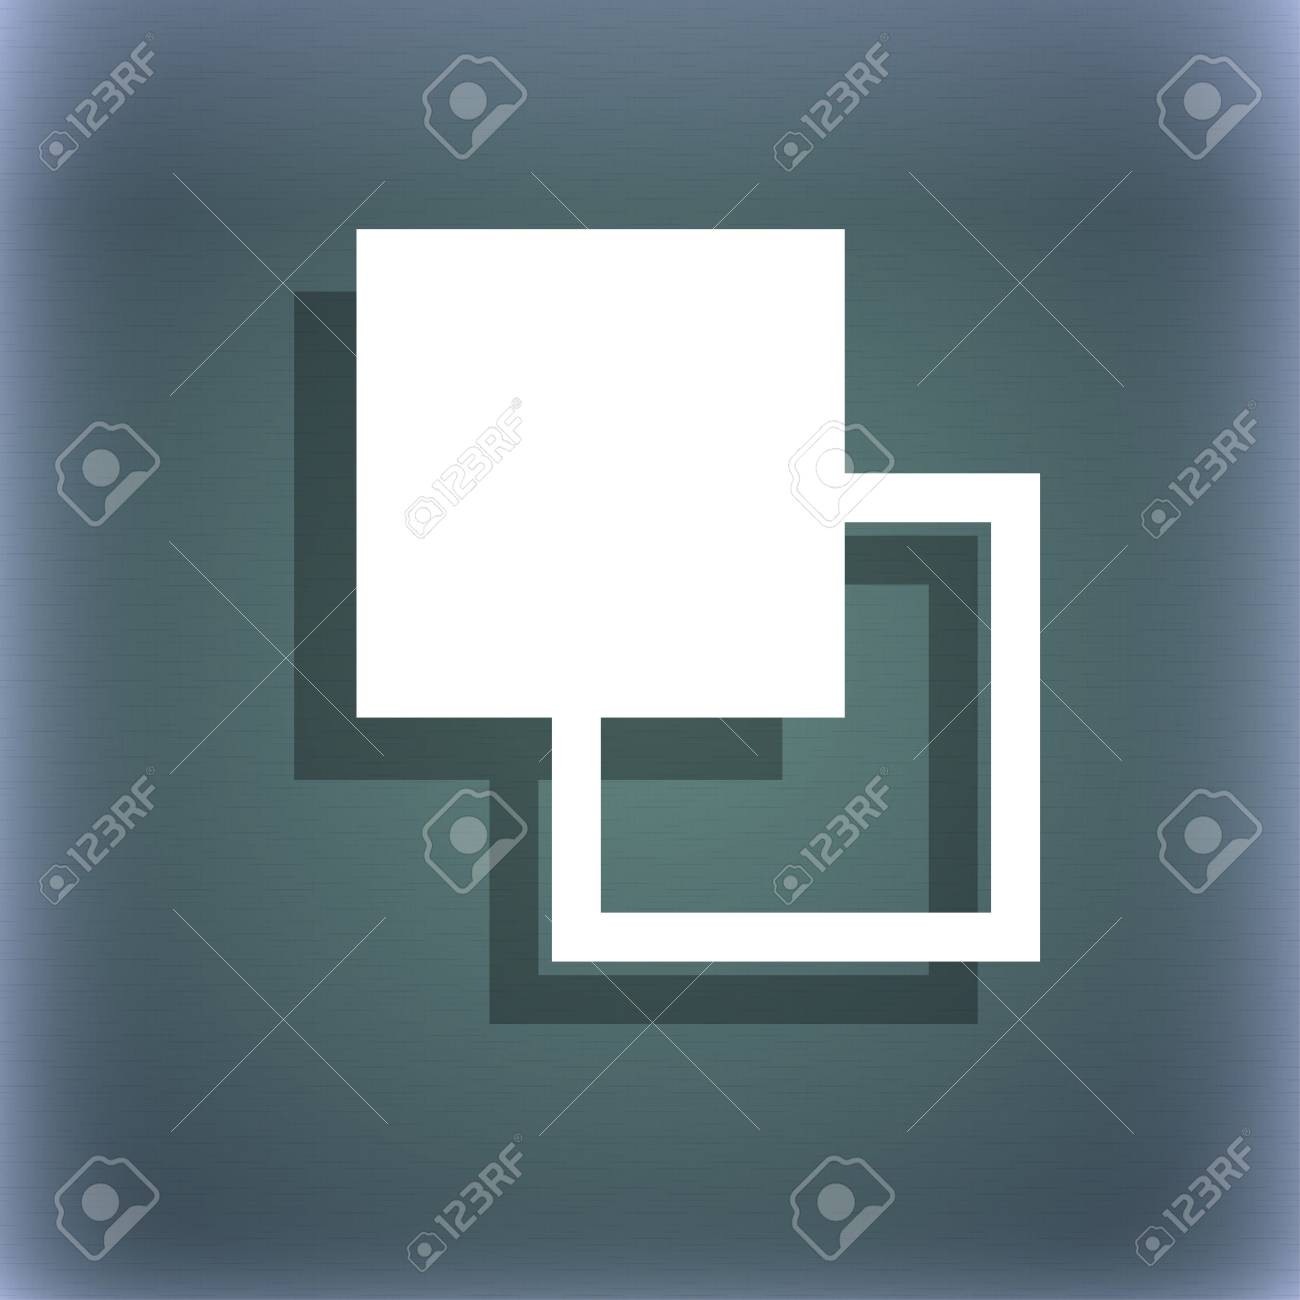 Active Color Toolbar Icon Symbol On The Blue green Abstract 1300x1300